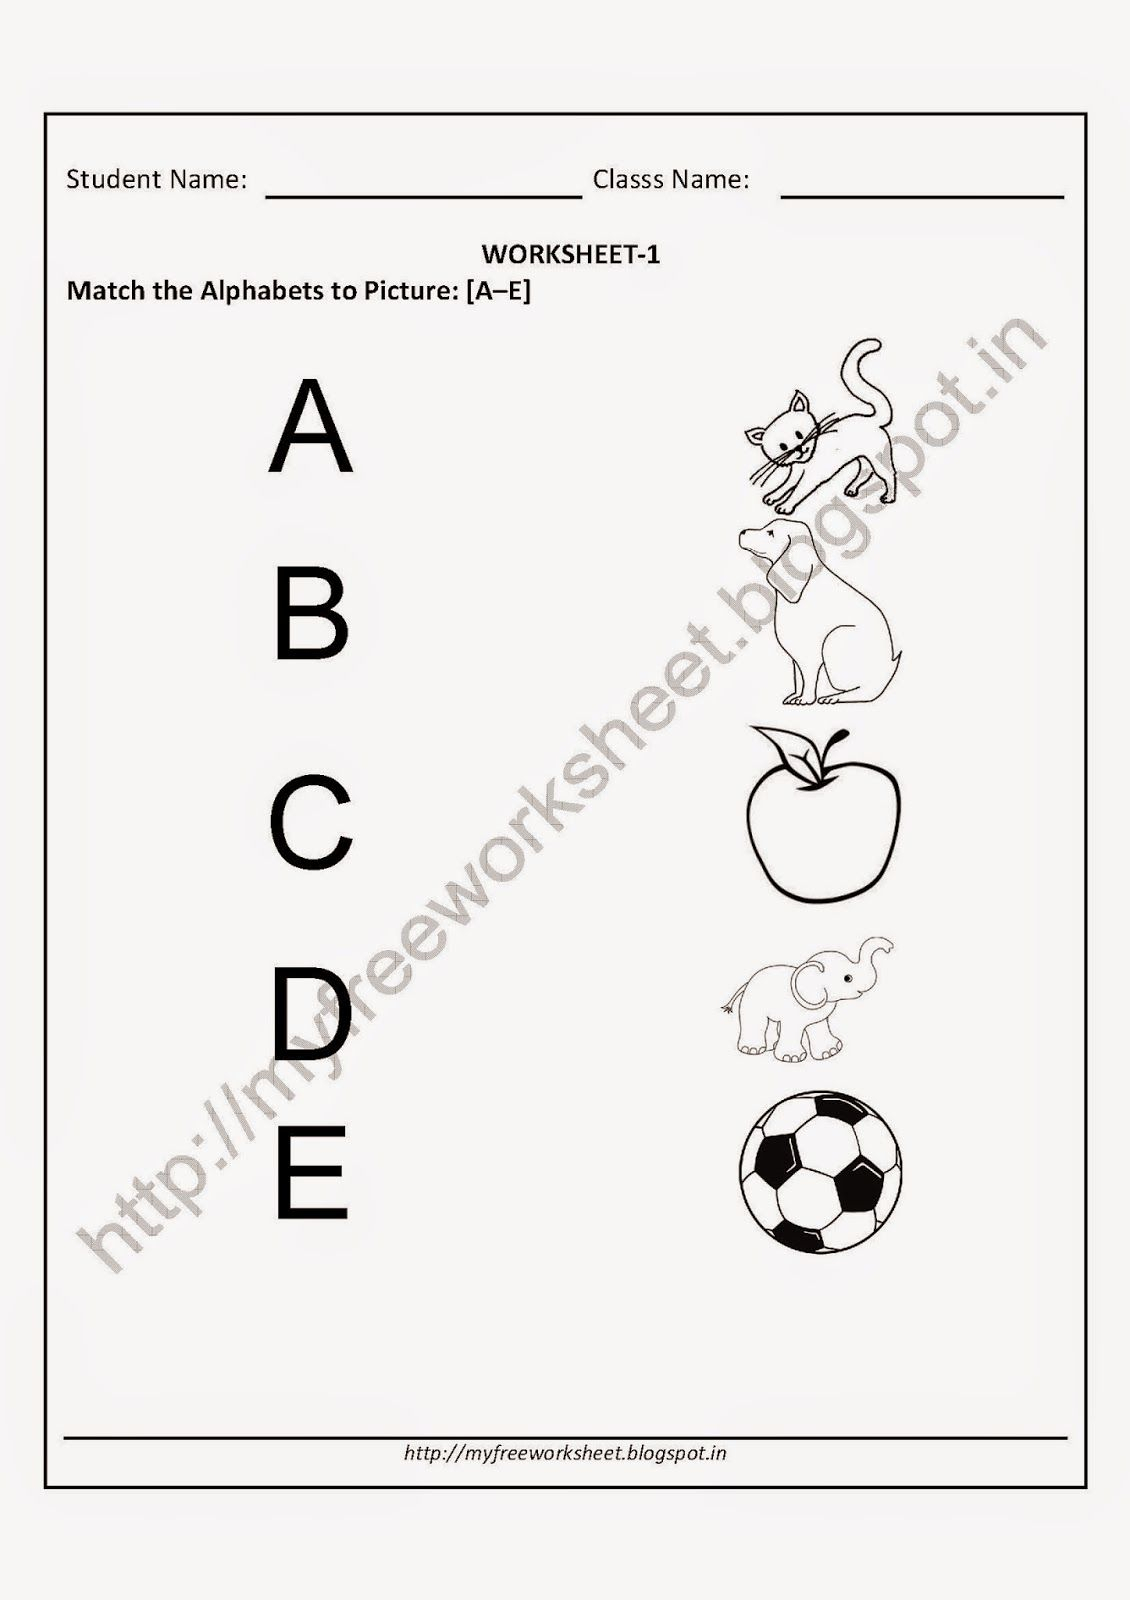 Alphabet Matching Worksheets For Kindergarten Pdf Worksheet with Alphabet Matching Worksheets For Kindergarten Pdf